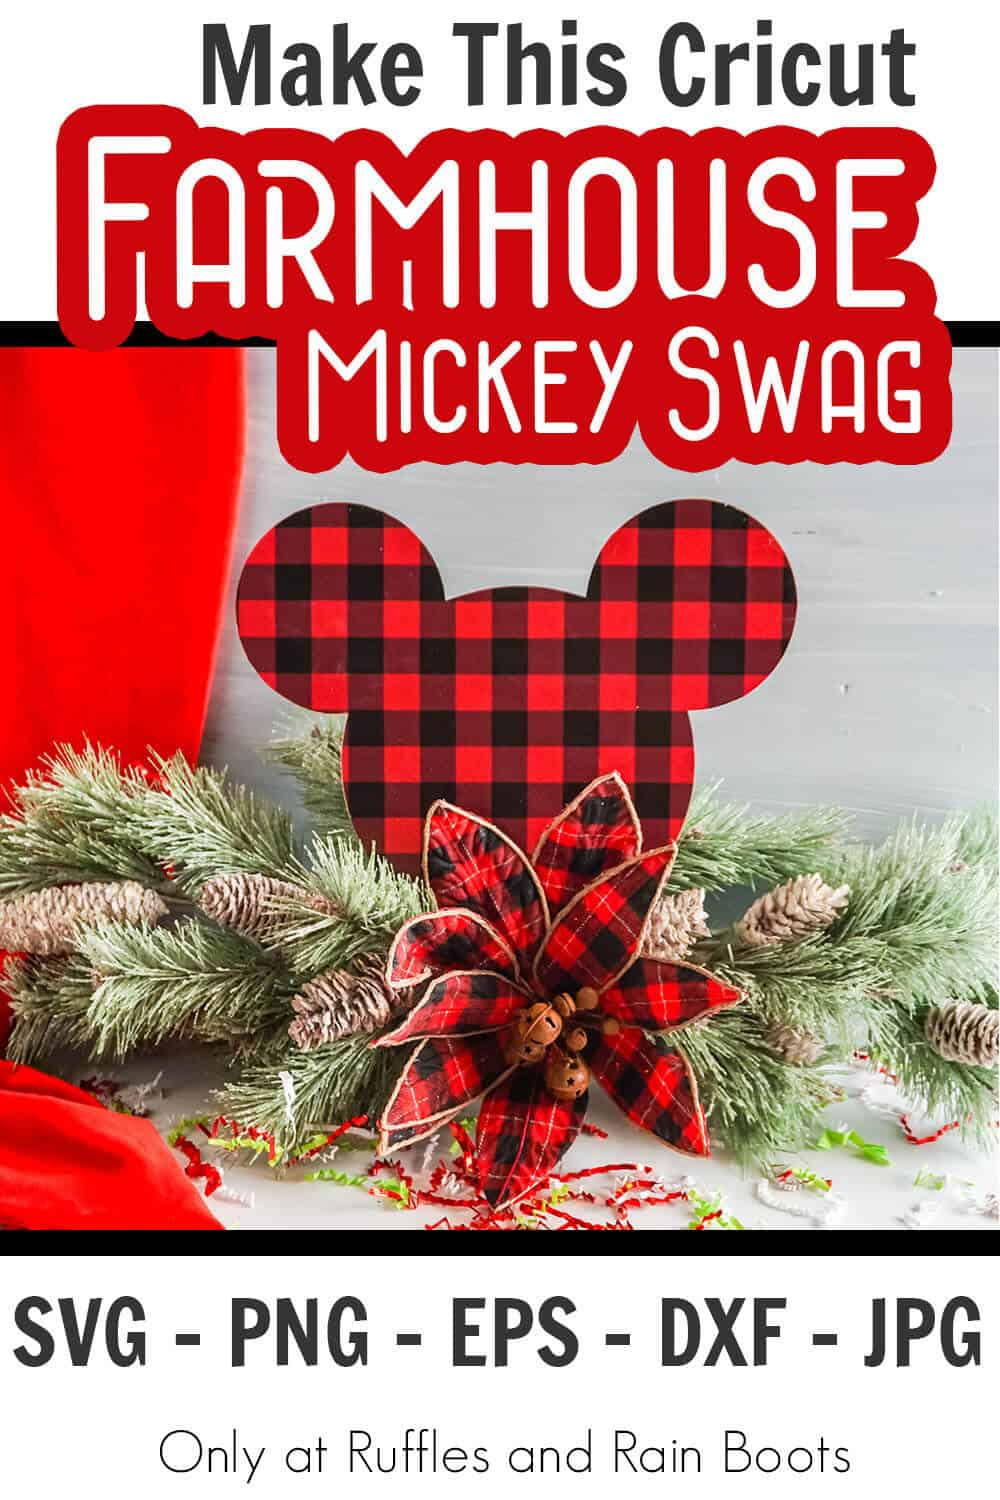 easy farmhouse christmas swag with mickey mouse silhouette with text which reads make this cricut farmhouse mickey swag svg png eps dxf jpg